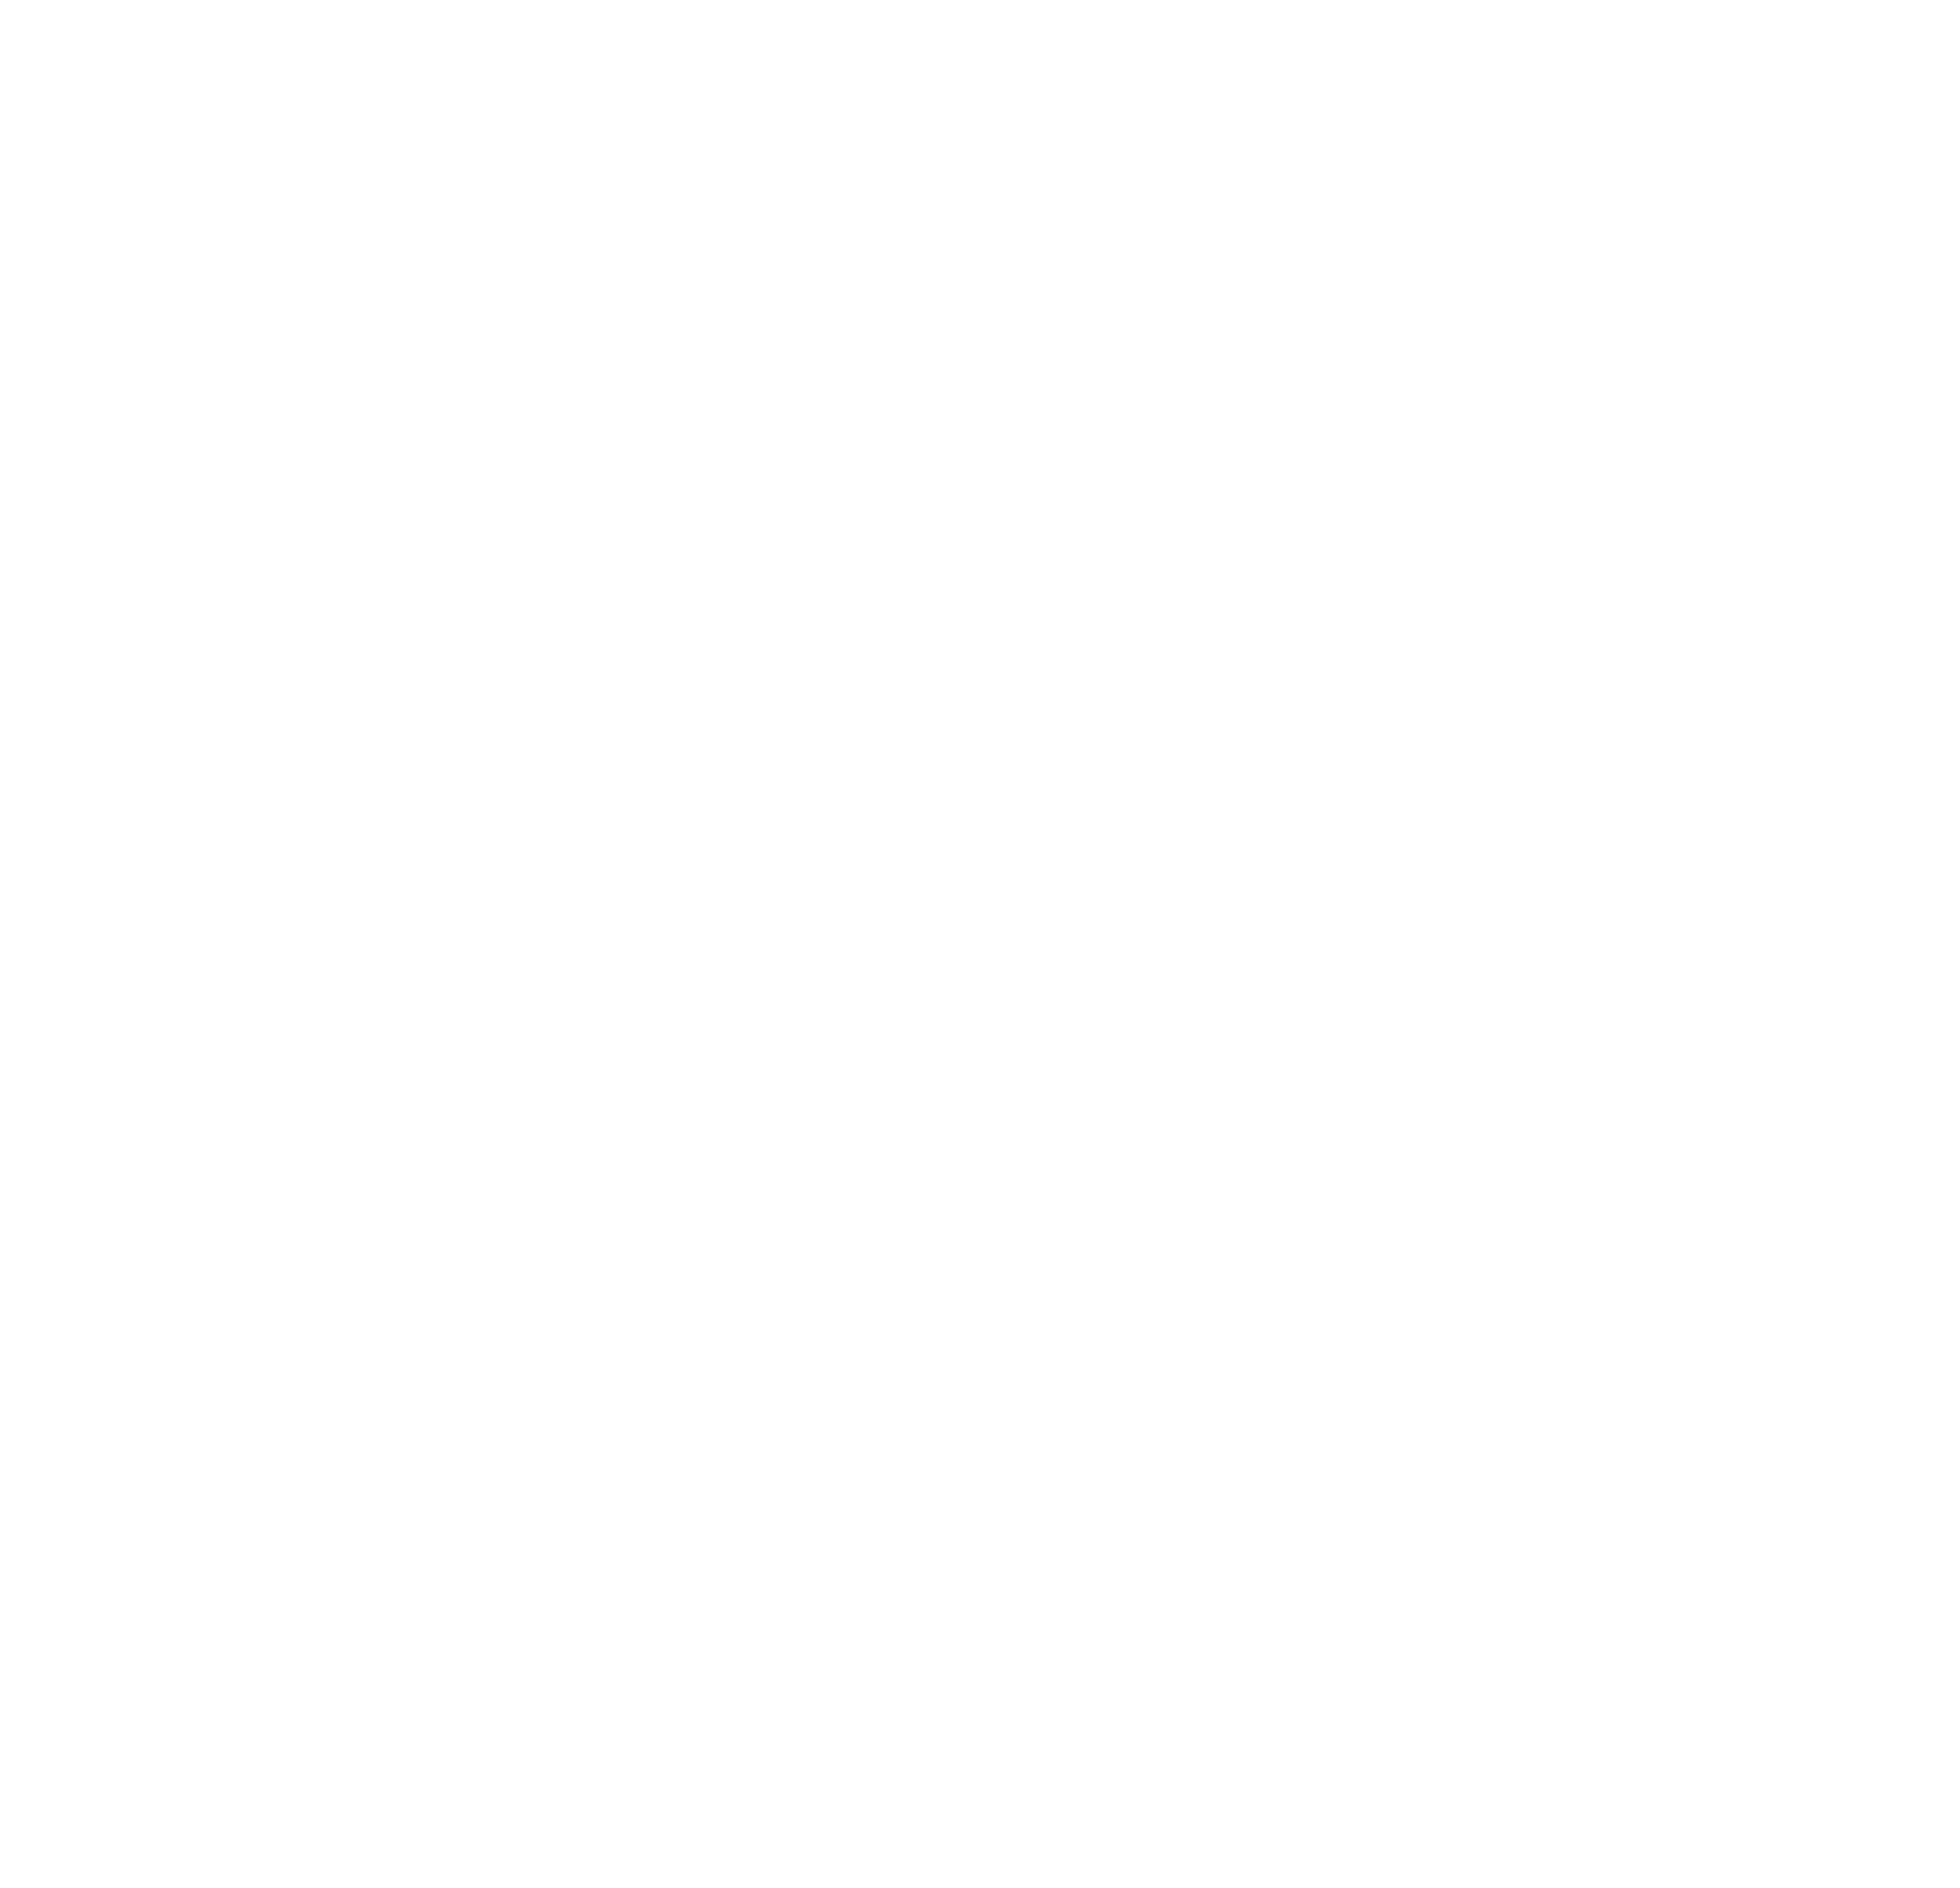 Restoration - Hotel Monumento Pazo do Río